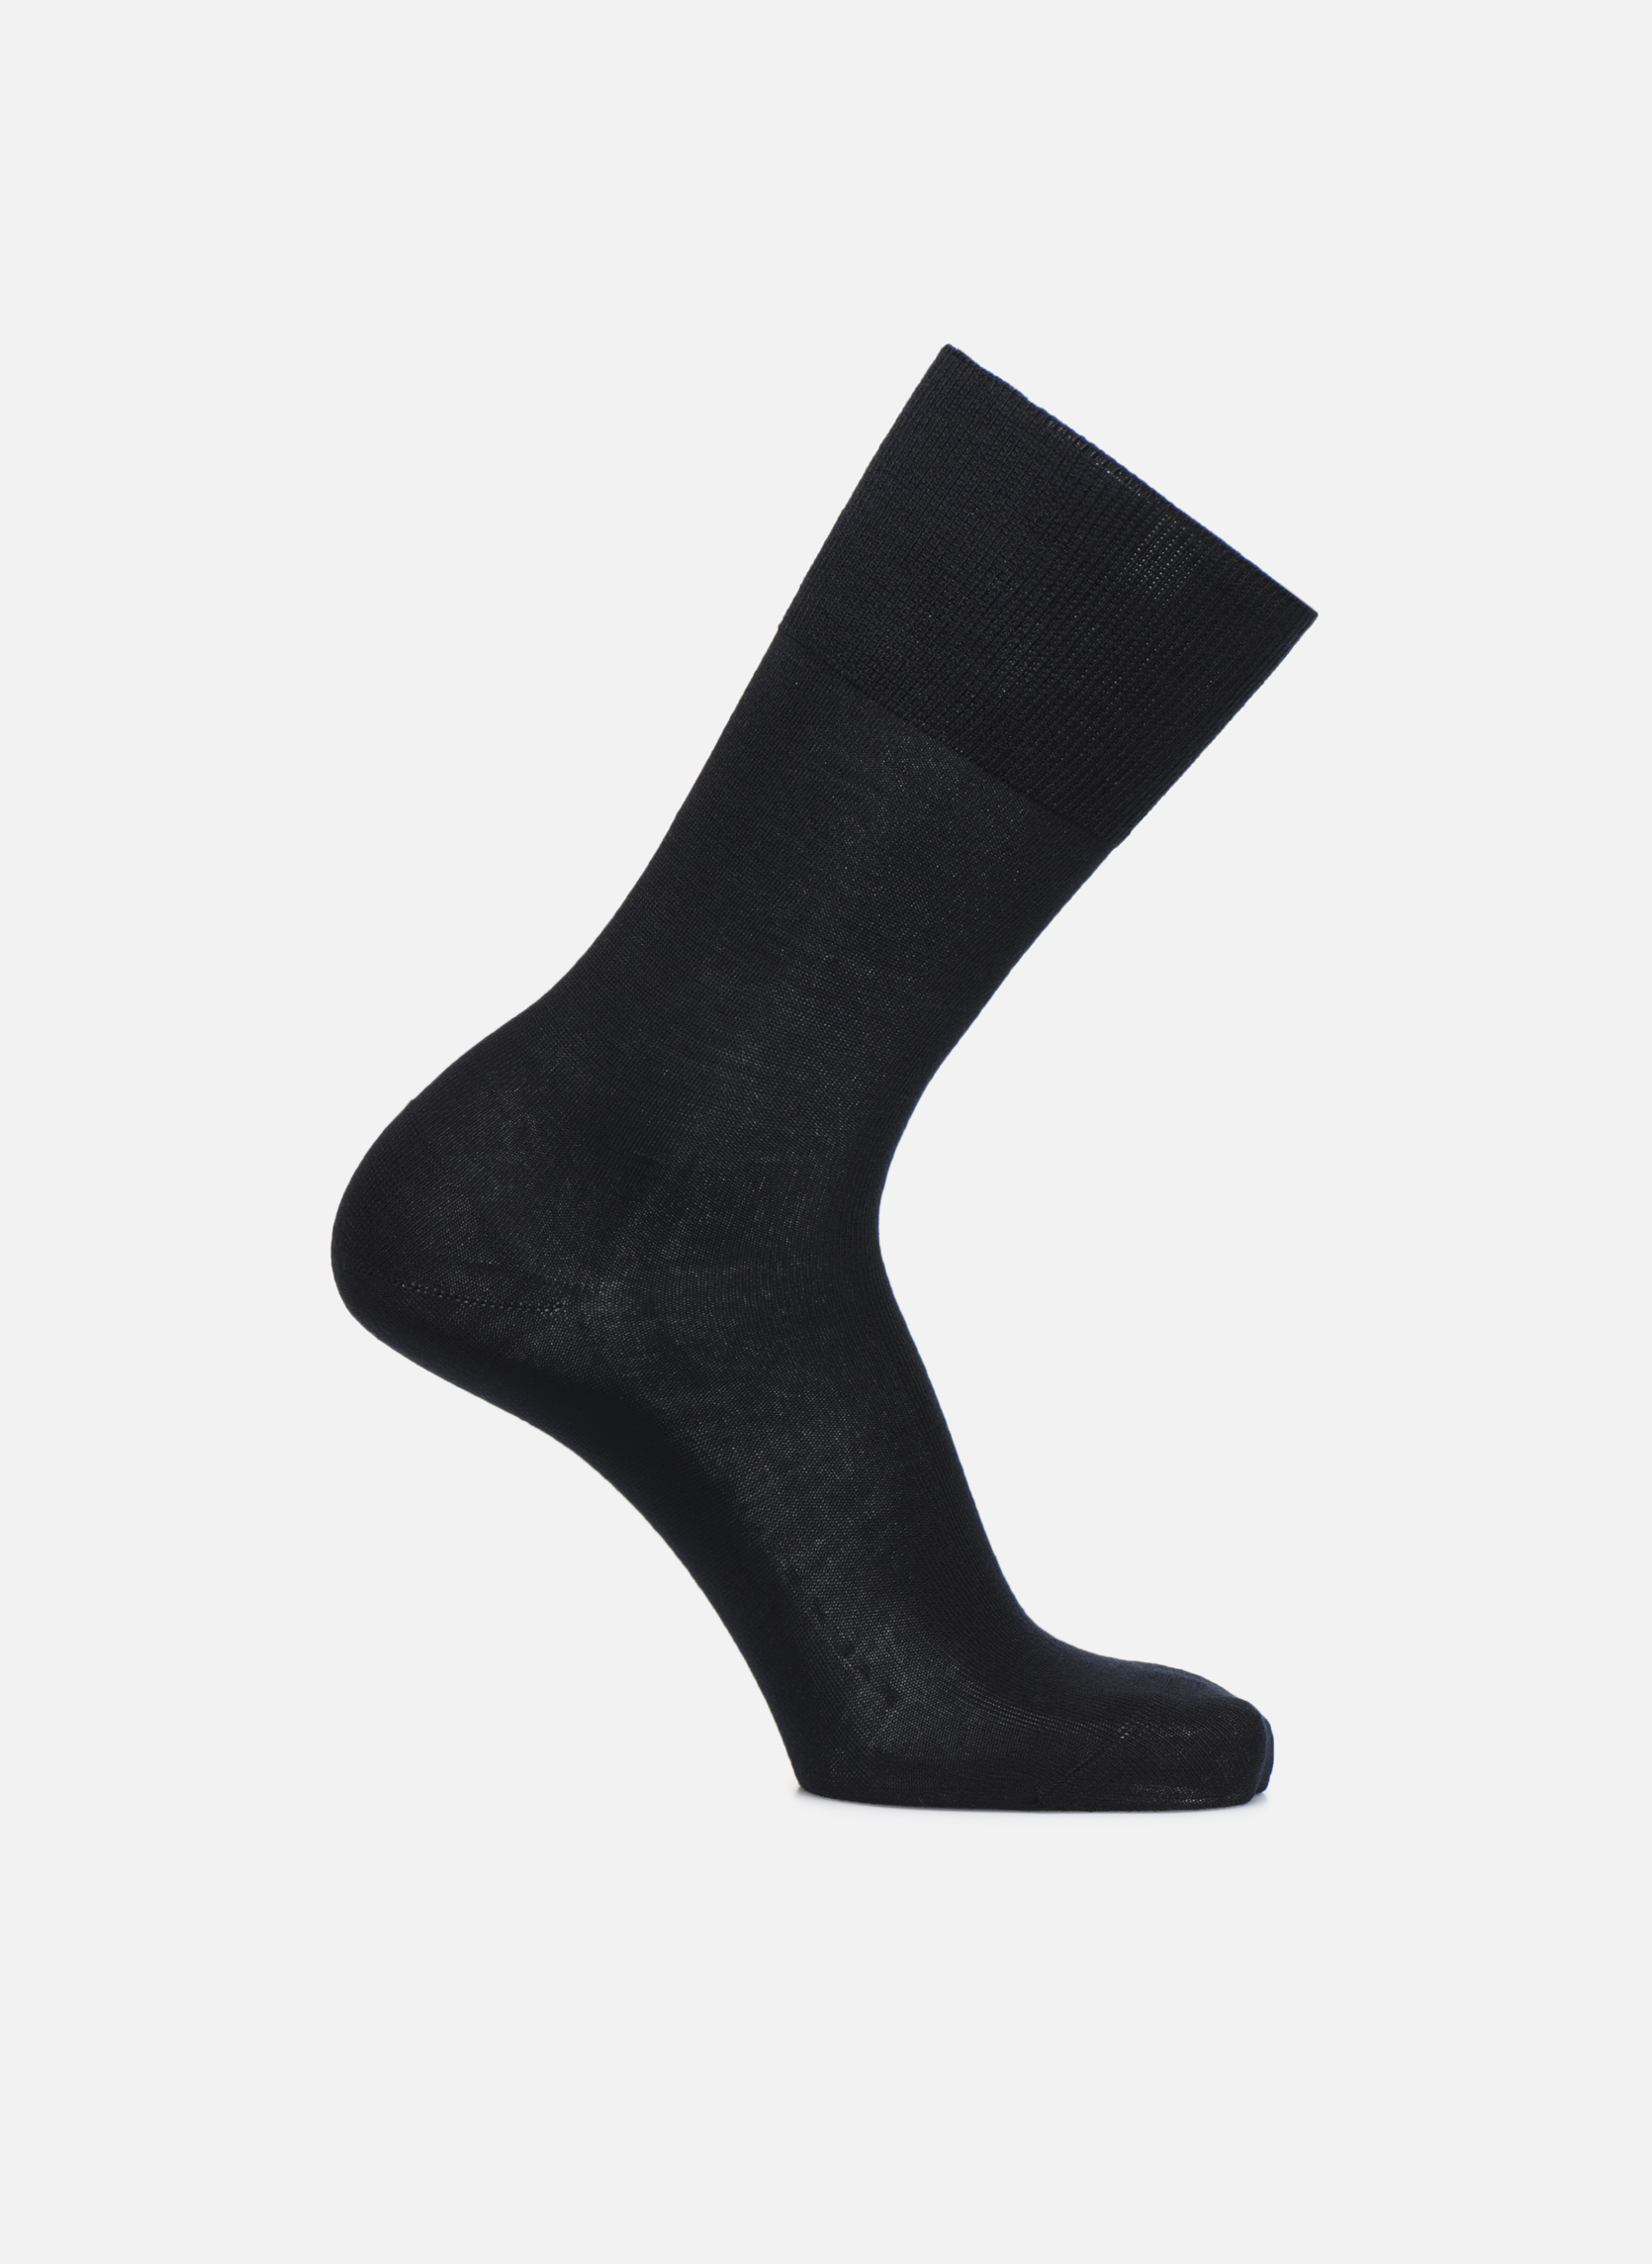 Chaussettes AIRPORT 6370 marine